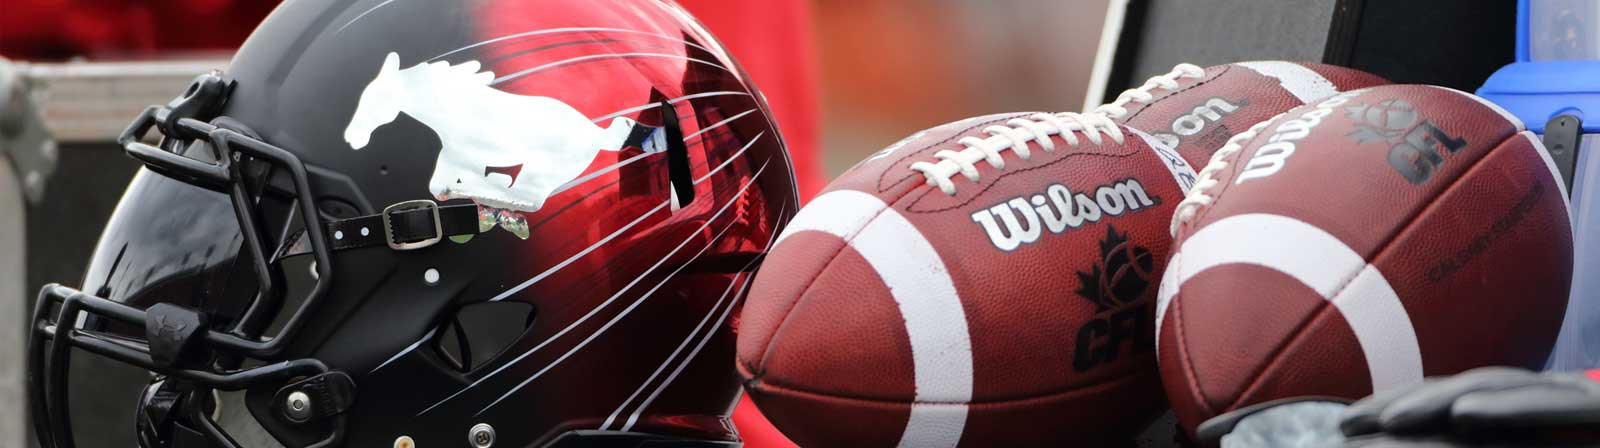 Jeff Luc Added To Practice Roster Calgary Stampeders